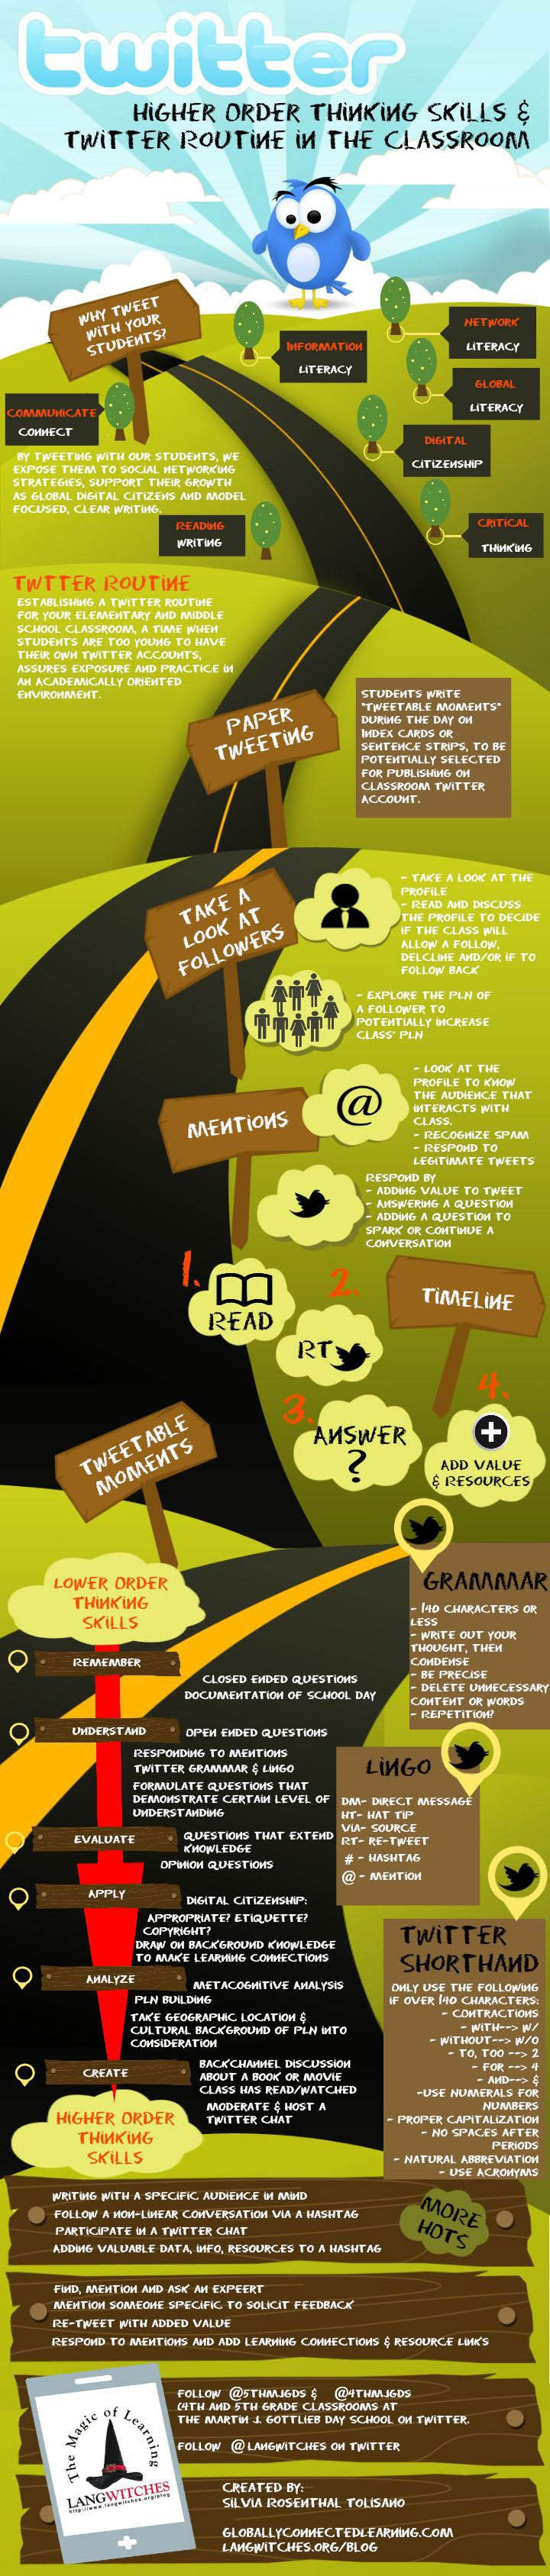 Bloom's Taxonomy of Twitter In